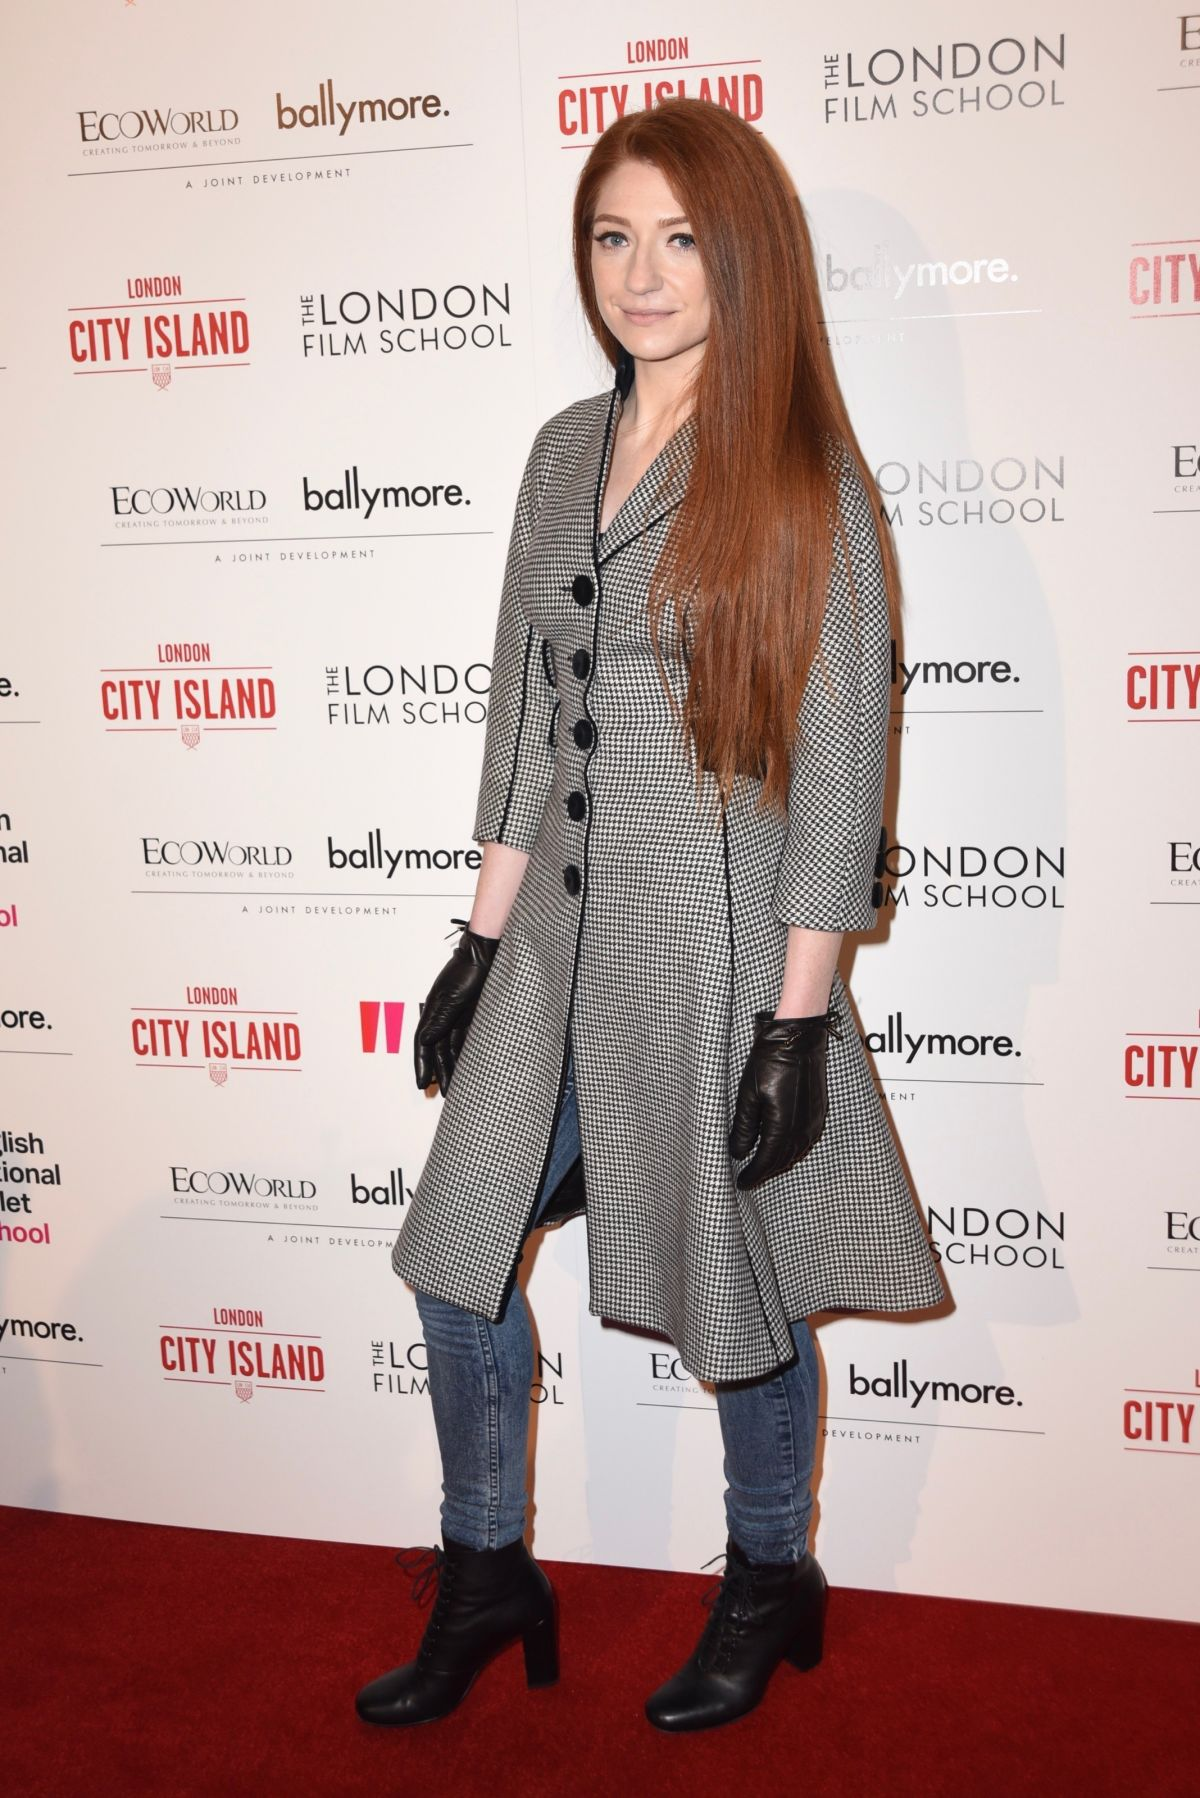 NICOLA ROBERTS at London City Island Opening Event for National Ballet in London 11/08/2016